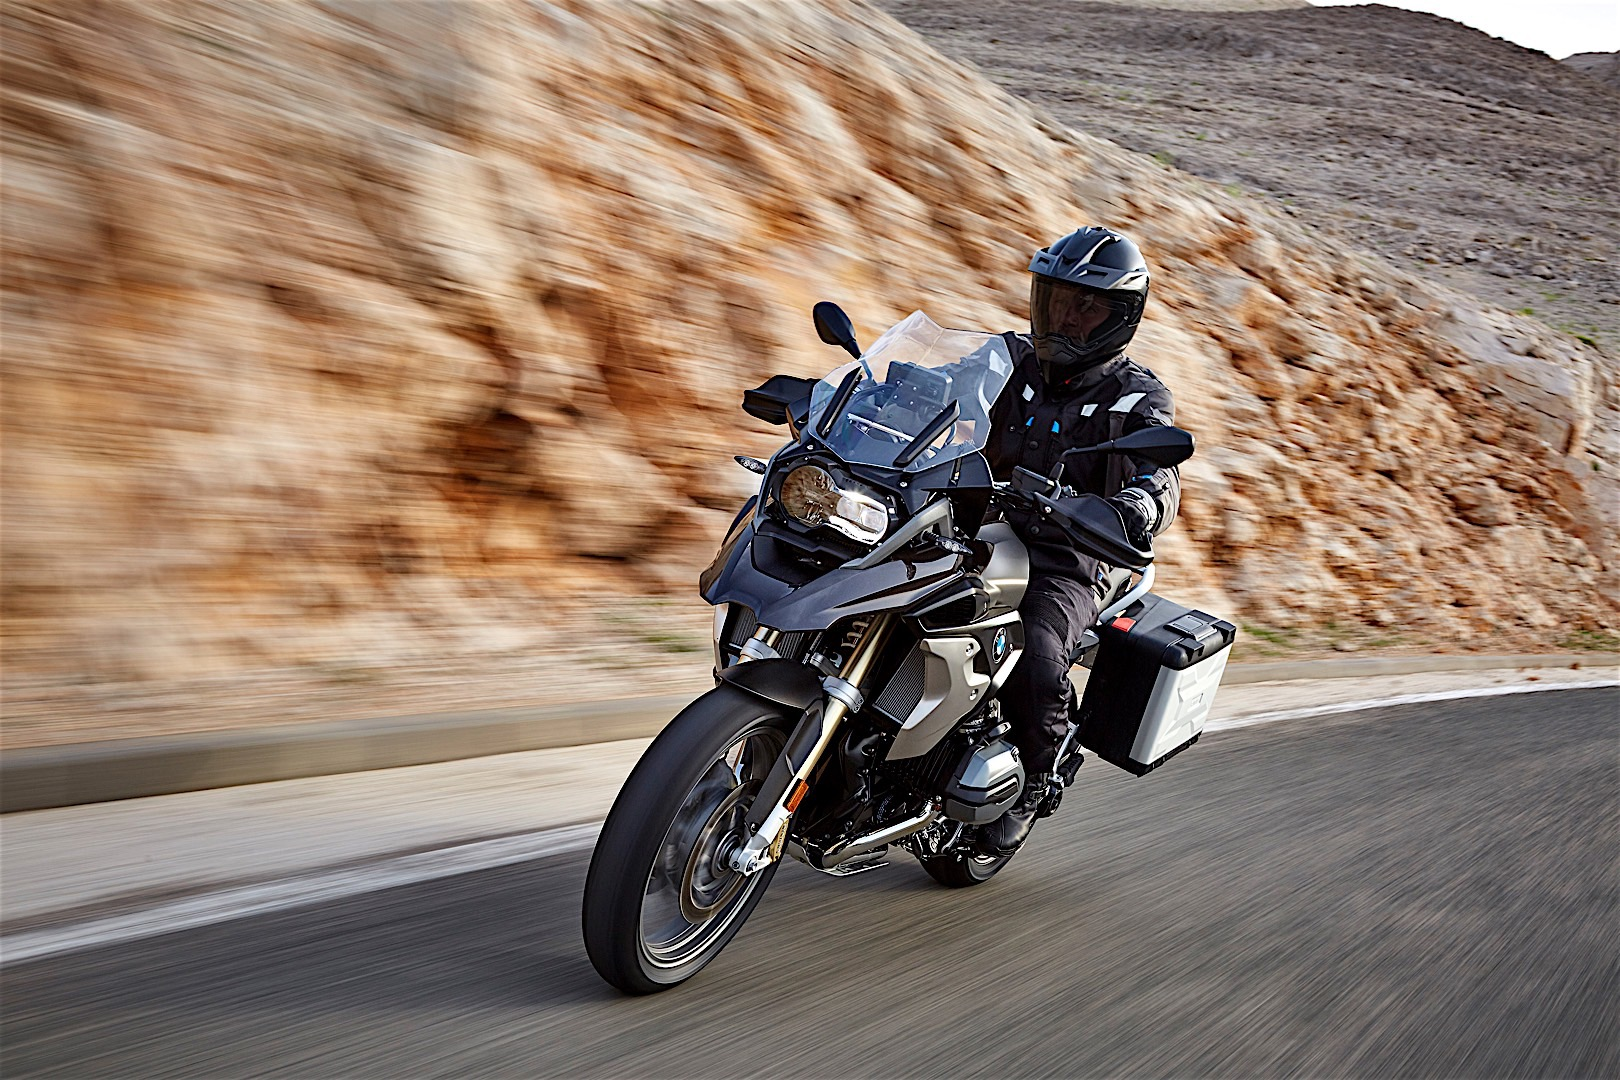 bmw reveals updated 2017 r 1200 gs at eicma autoevolution. Black Bedroom Furniture Sets. Home Design Ideas